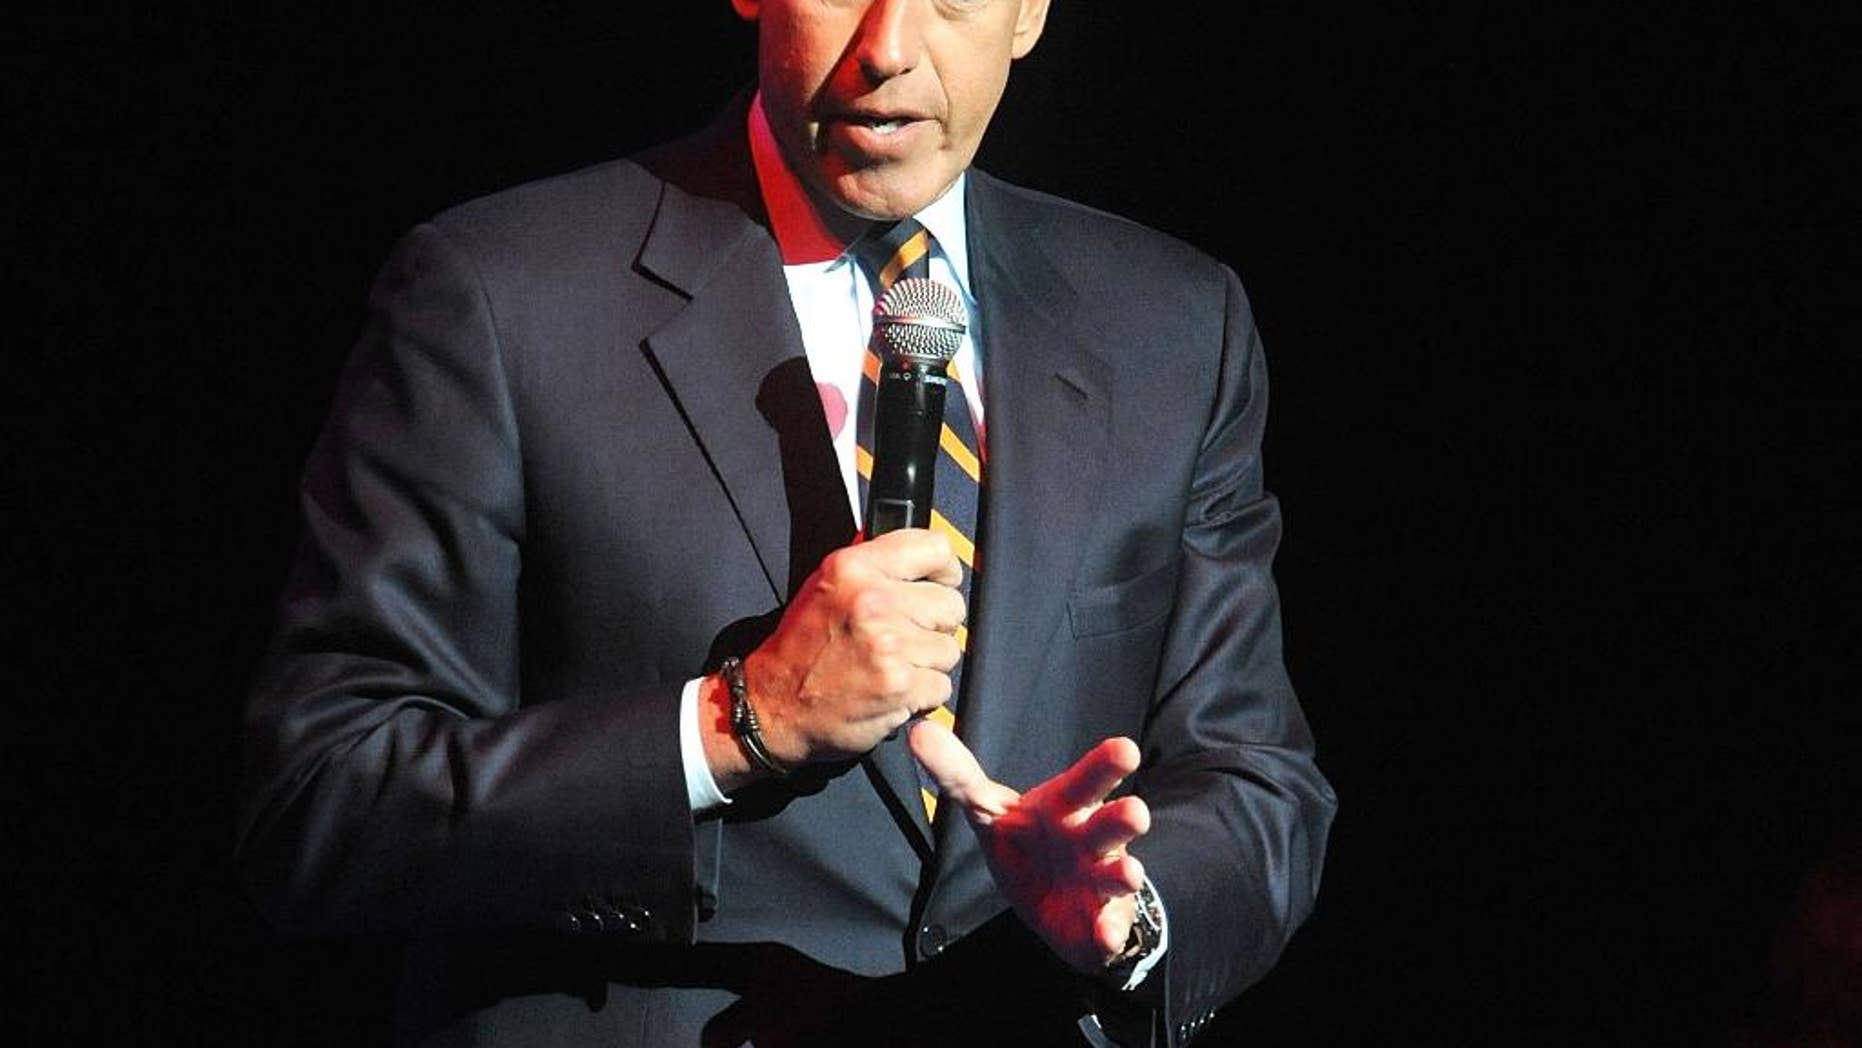 FILE - In this Nov. 5, 2014, file photo, Brian Williams speaks at the 8th Annual Stand Up For Heroes, presented by New York Comedy Festival and The Bob Woodruff Foundation in New York. Suspended NBC News anchor Williams and his wife attended a fundraiser, Saturday, March 21, 2015, and donated $50,000 in a bid to keep his Catholic high school in New Jersey, Mater Dei Prep, from closing. The school announced in February it will close in June because of financial problems unless it can raise $1 million. (Photo by Brad Barket/Invision/AP, File)